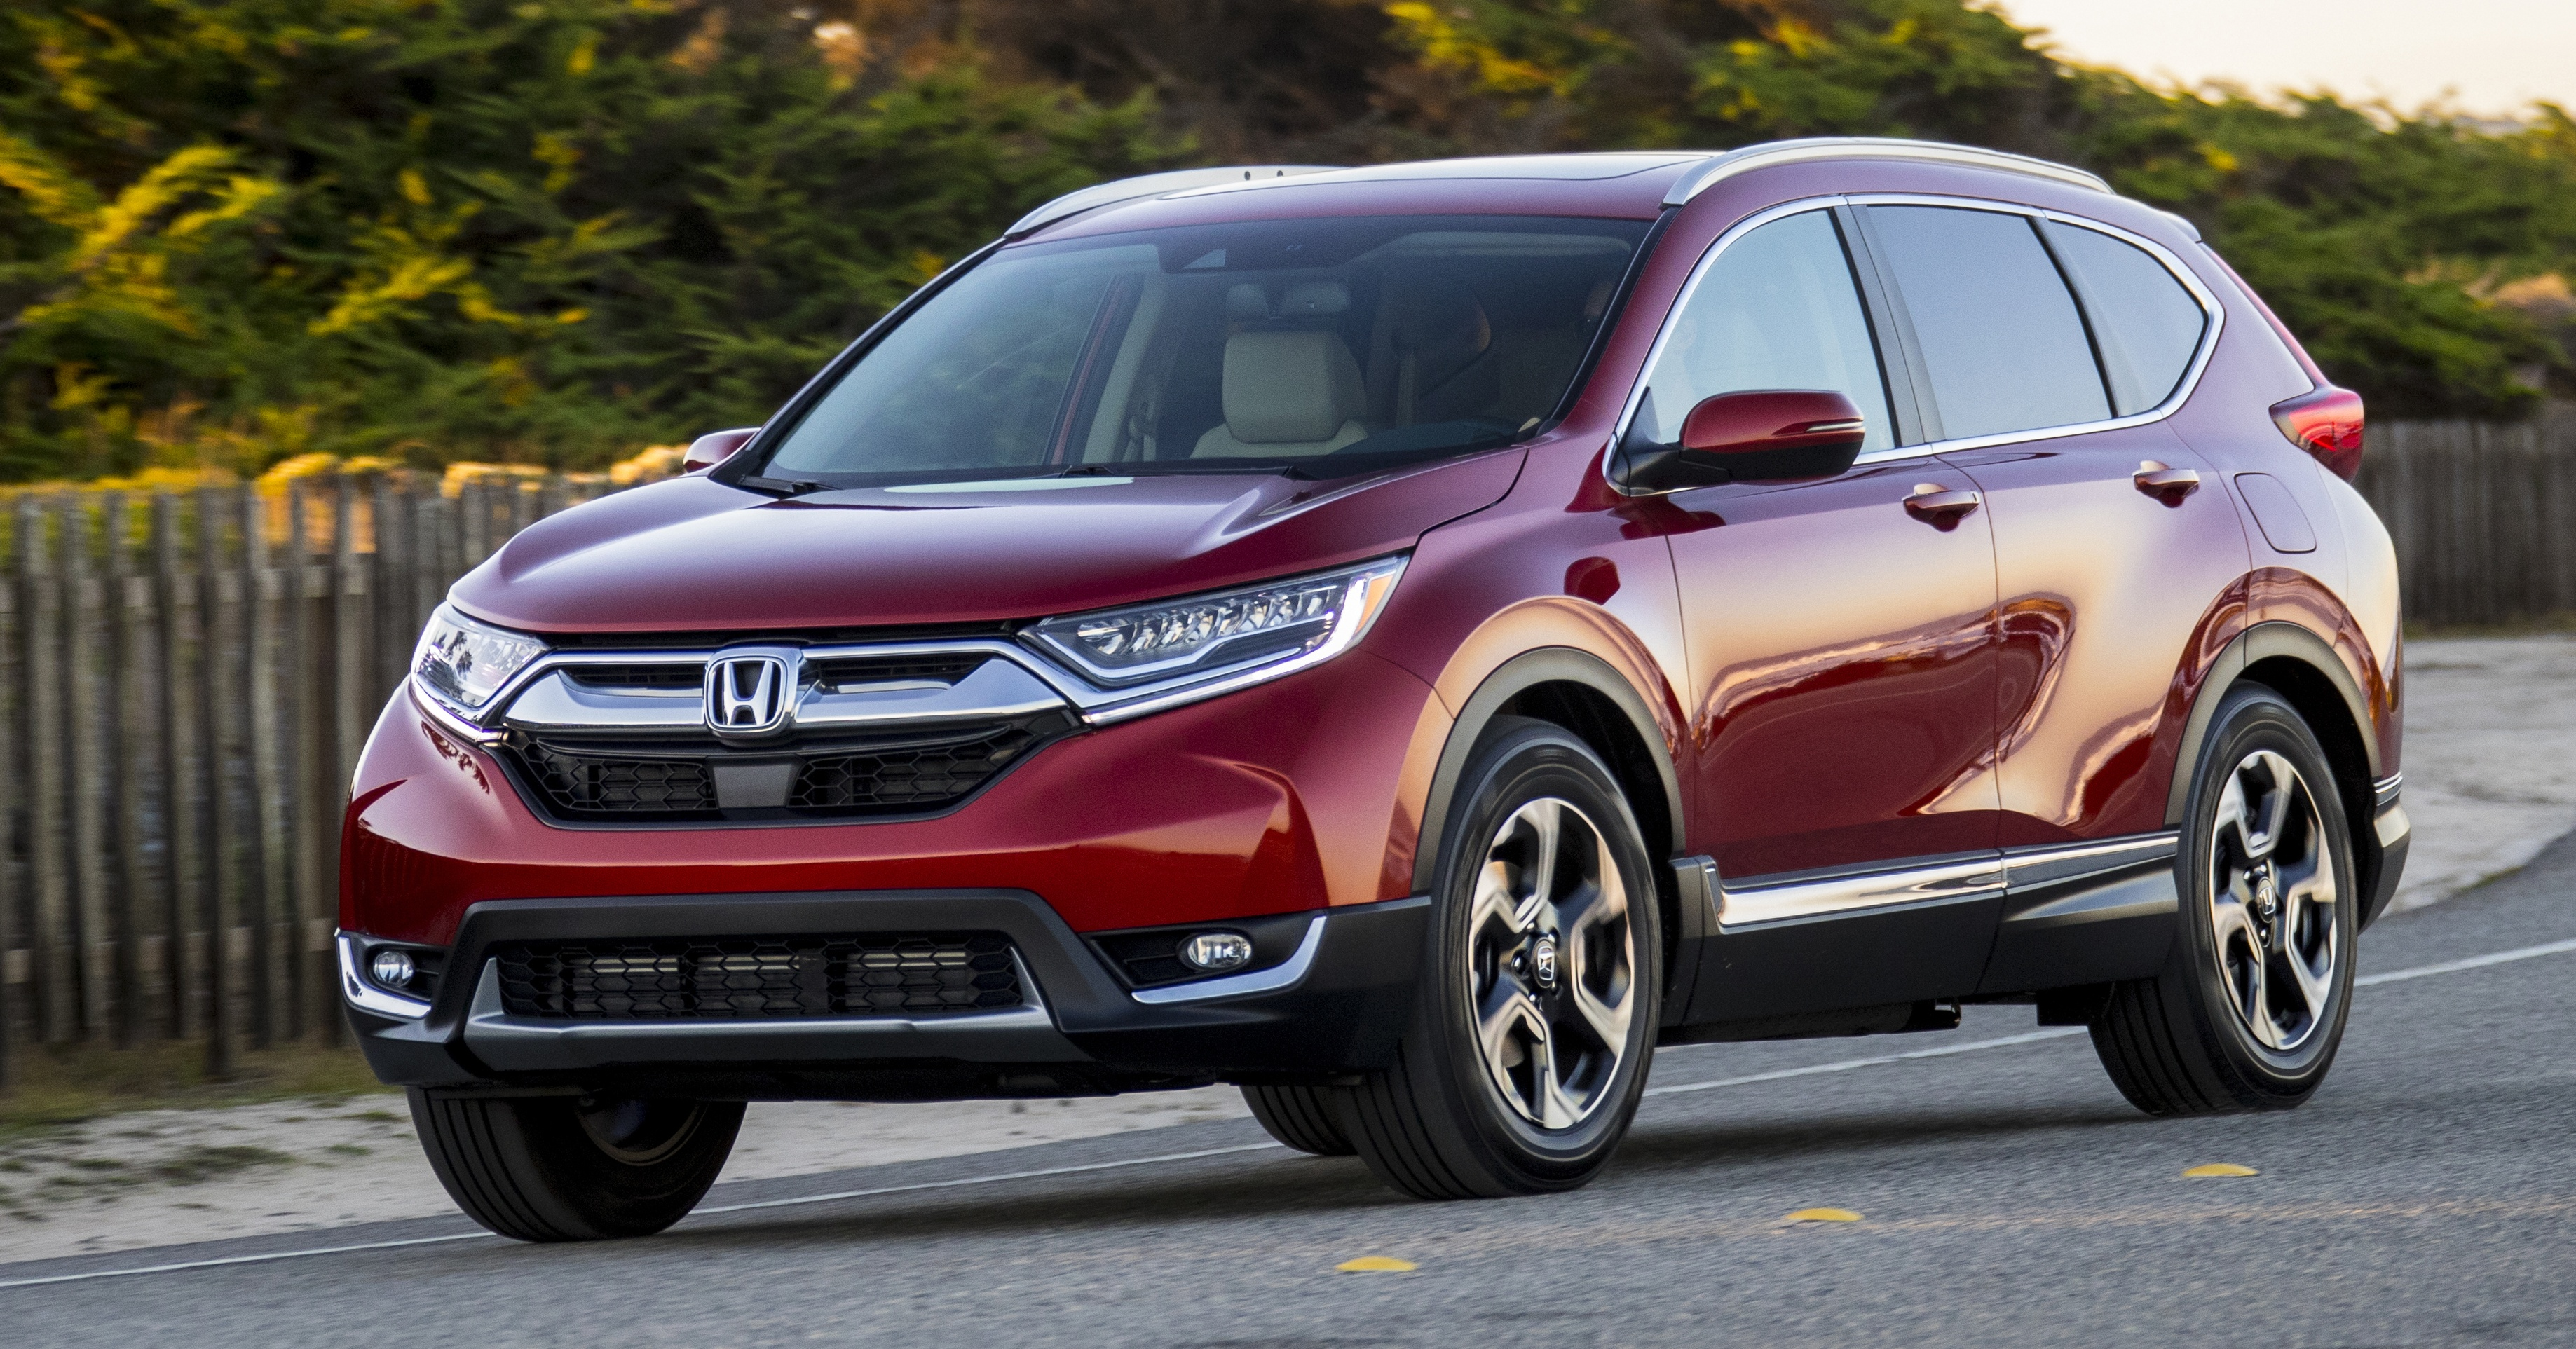 MEGA GALLERY: 2017 Honda CR-V gets showcased